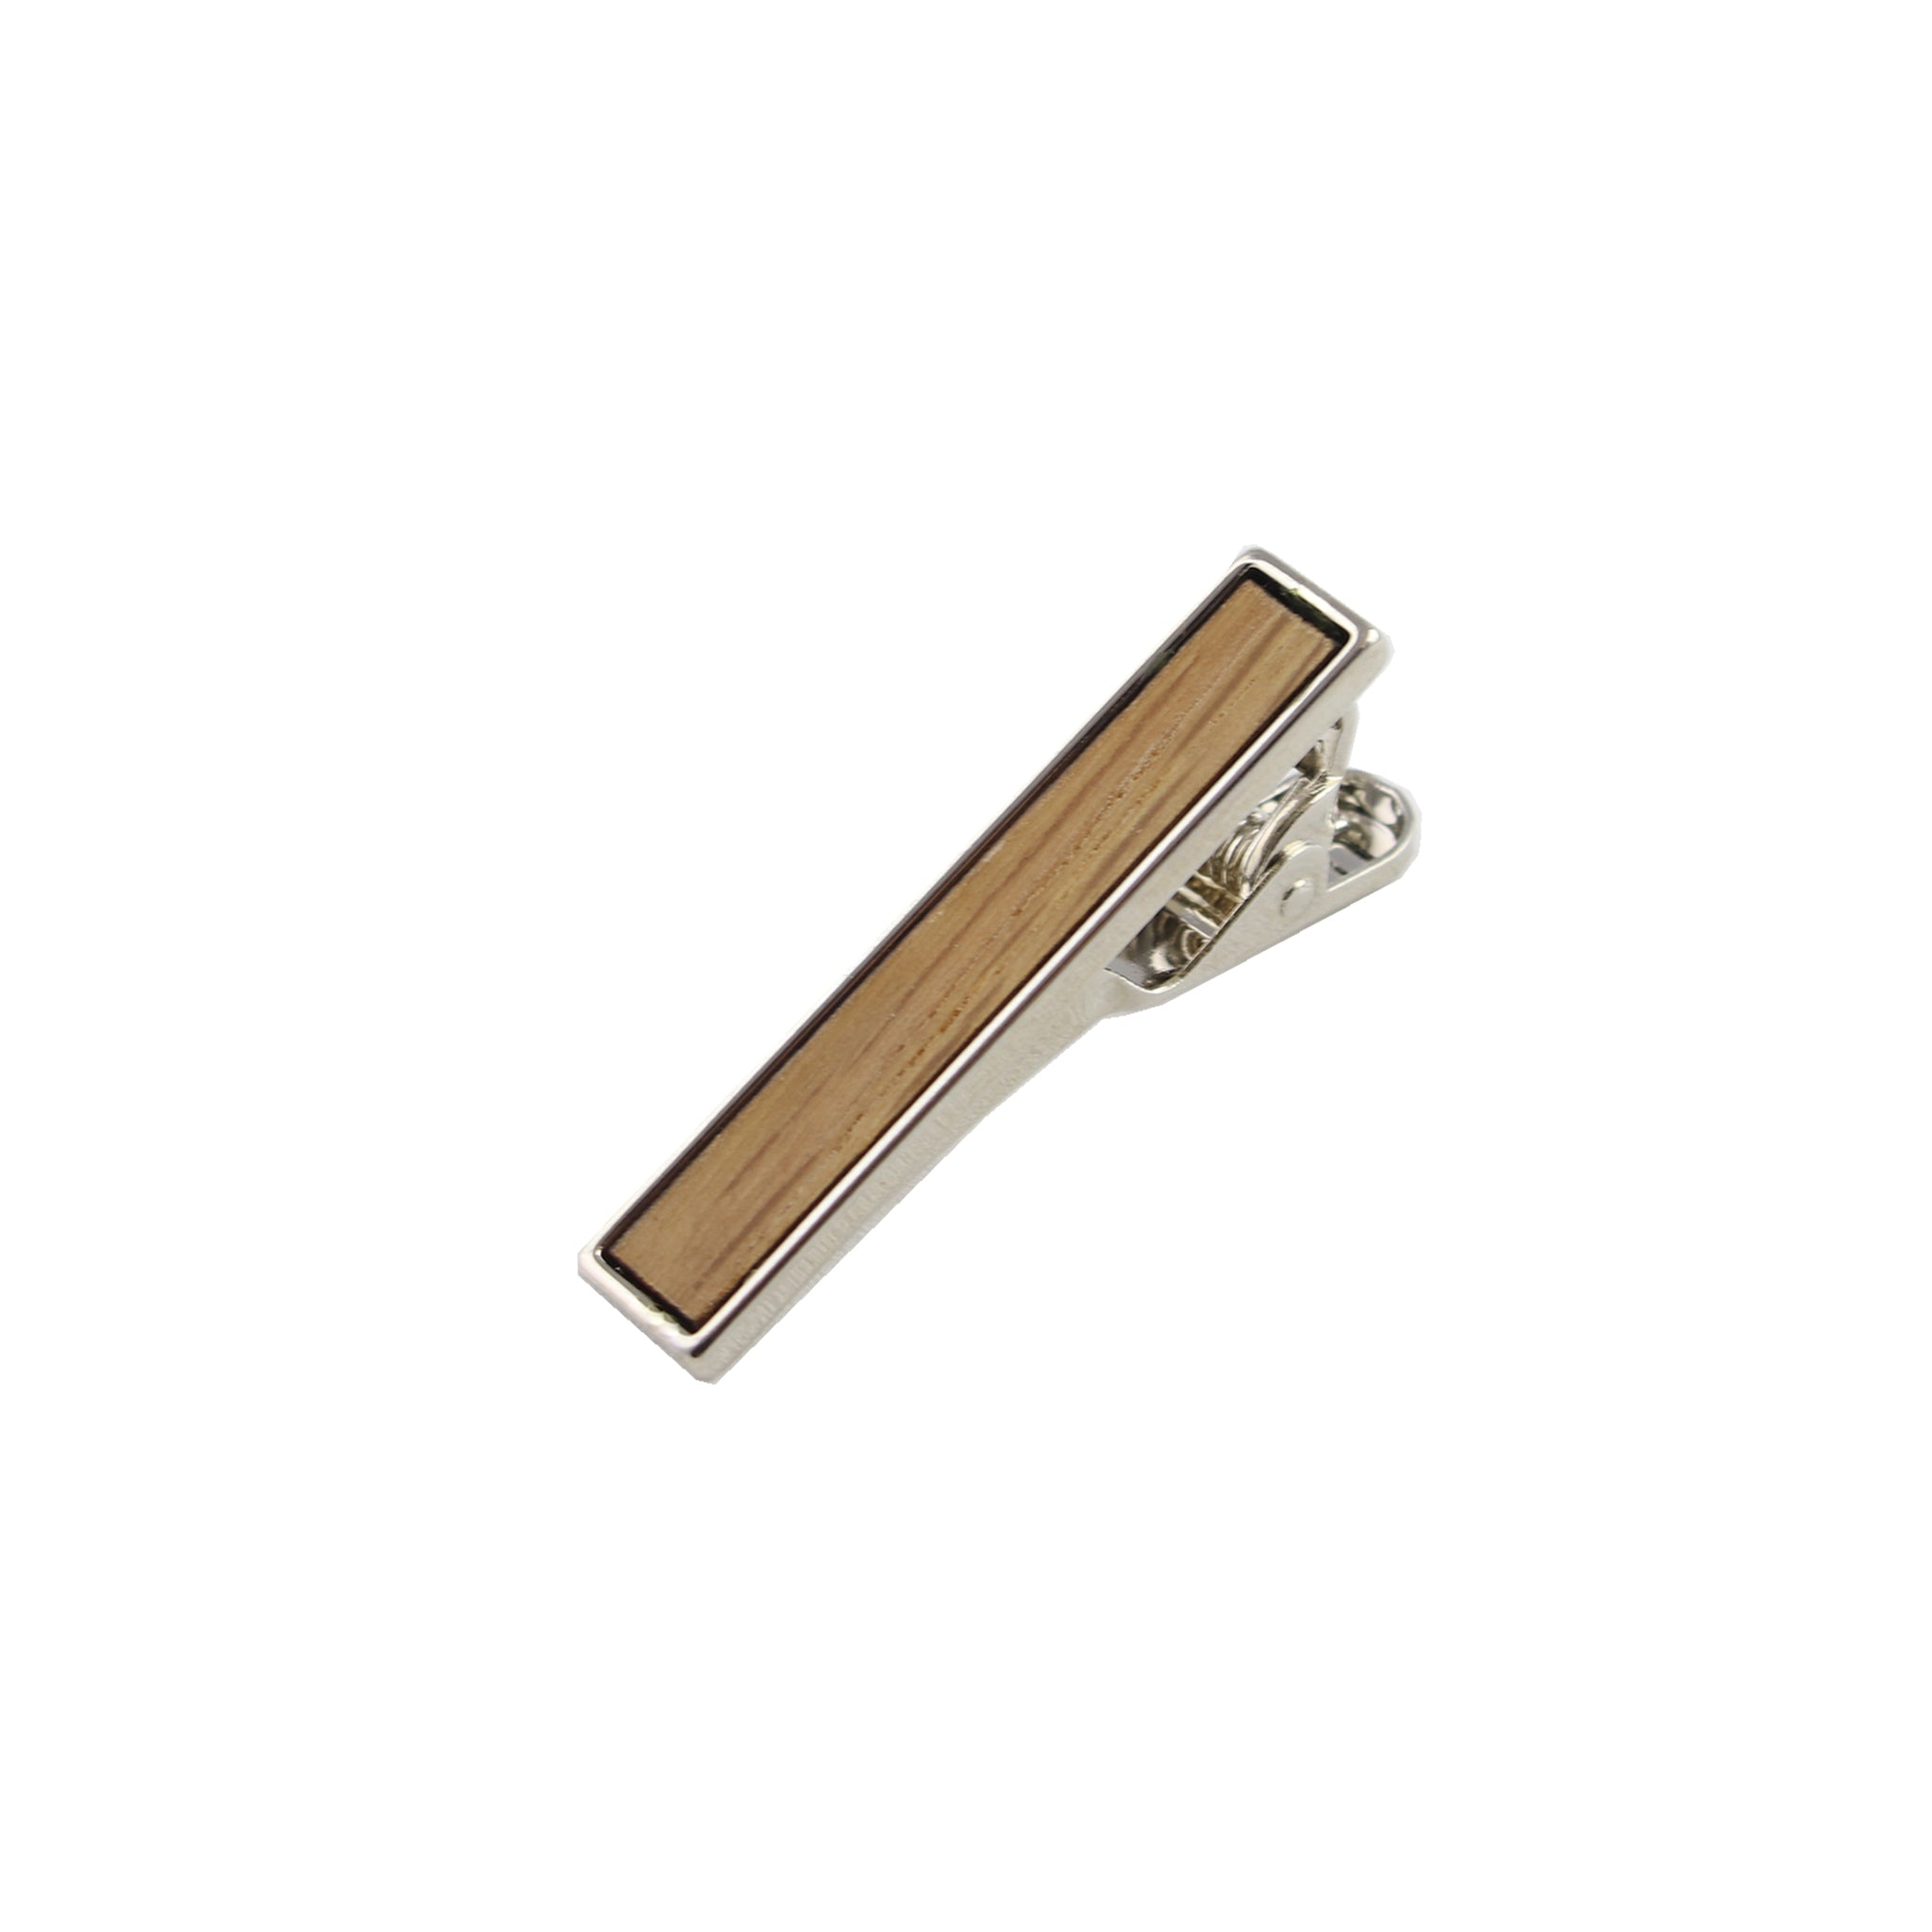 Ash Wooden Inlay-Silver Tie Bar from DIBI